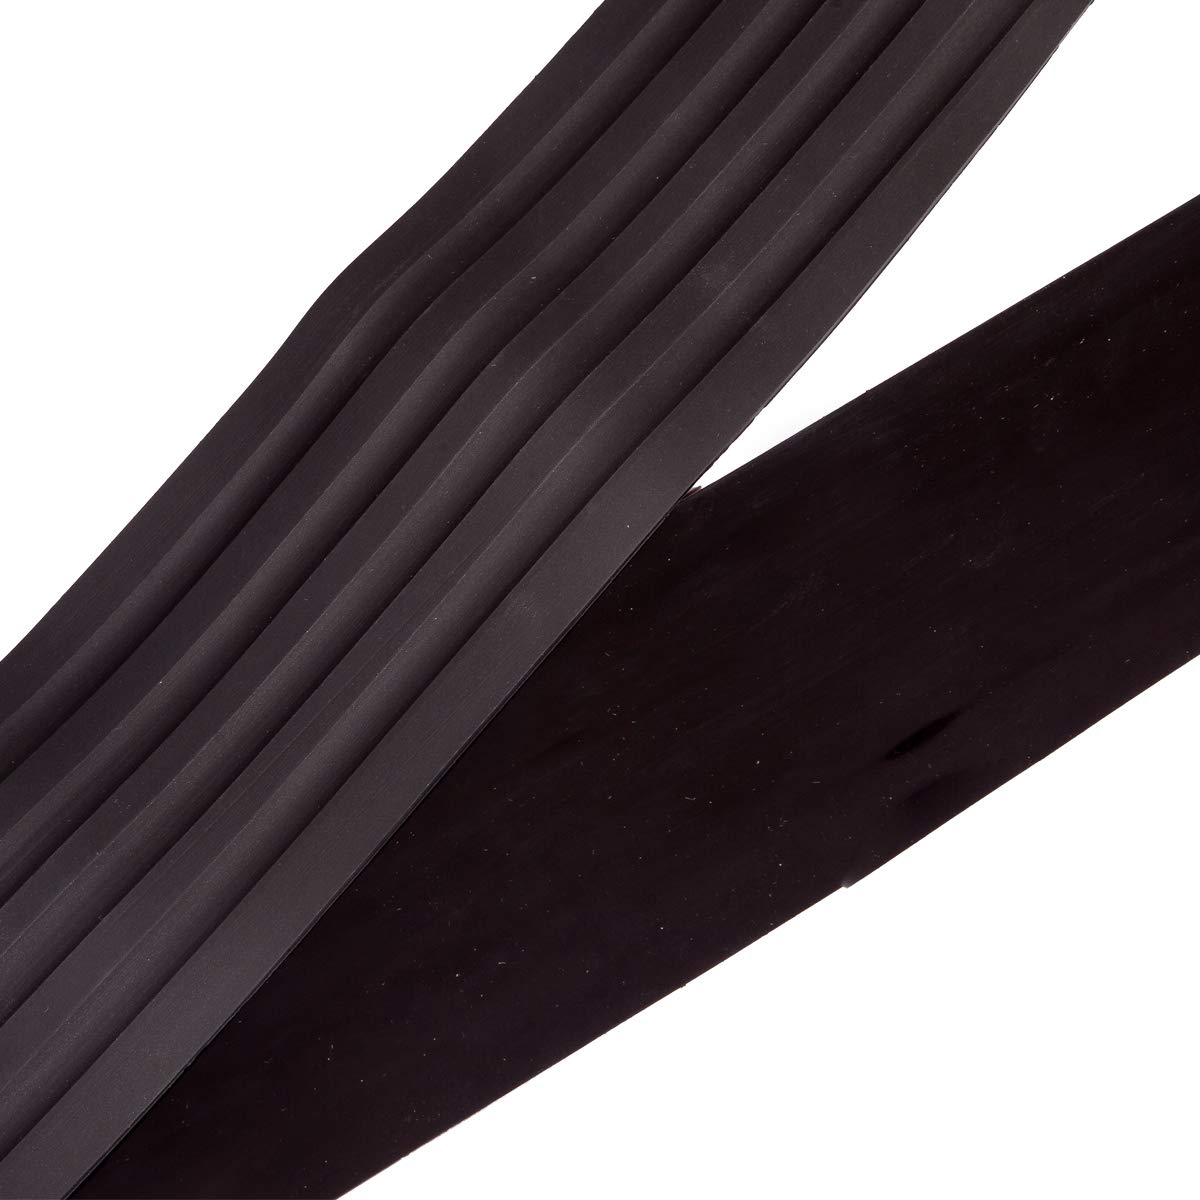 35.8inches WildAuto Rear Bumper Protector Guard Black Rubber Door Sill Guard for Car Pickup SUV Truck with 2 Pack 3M Tape